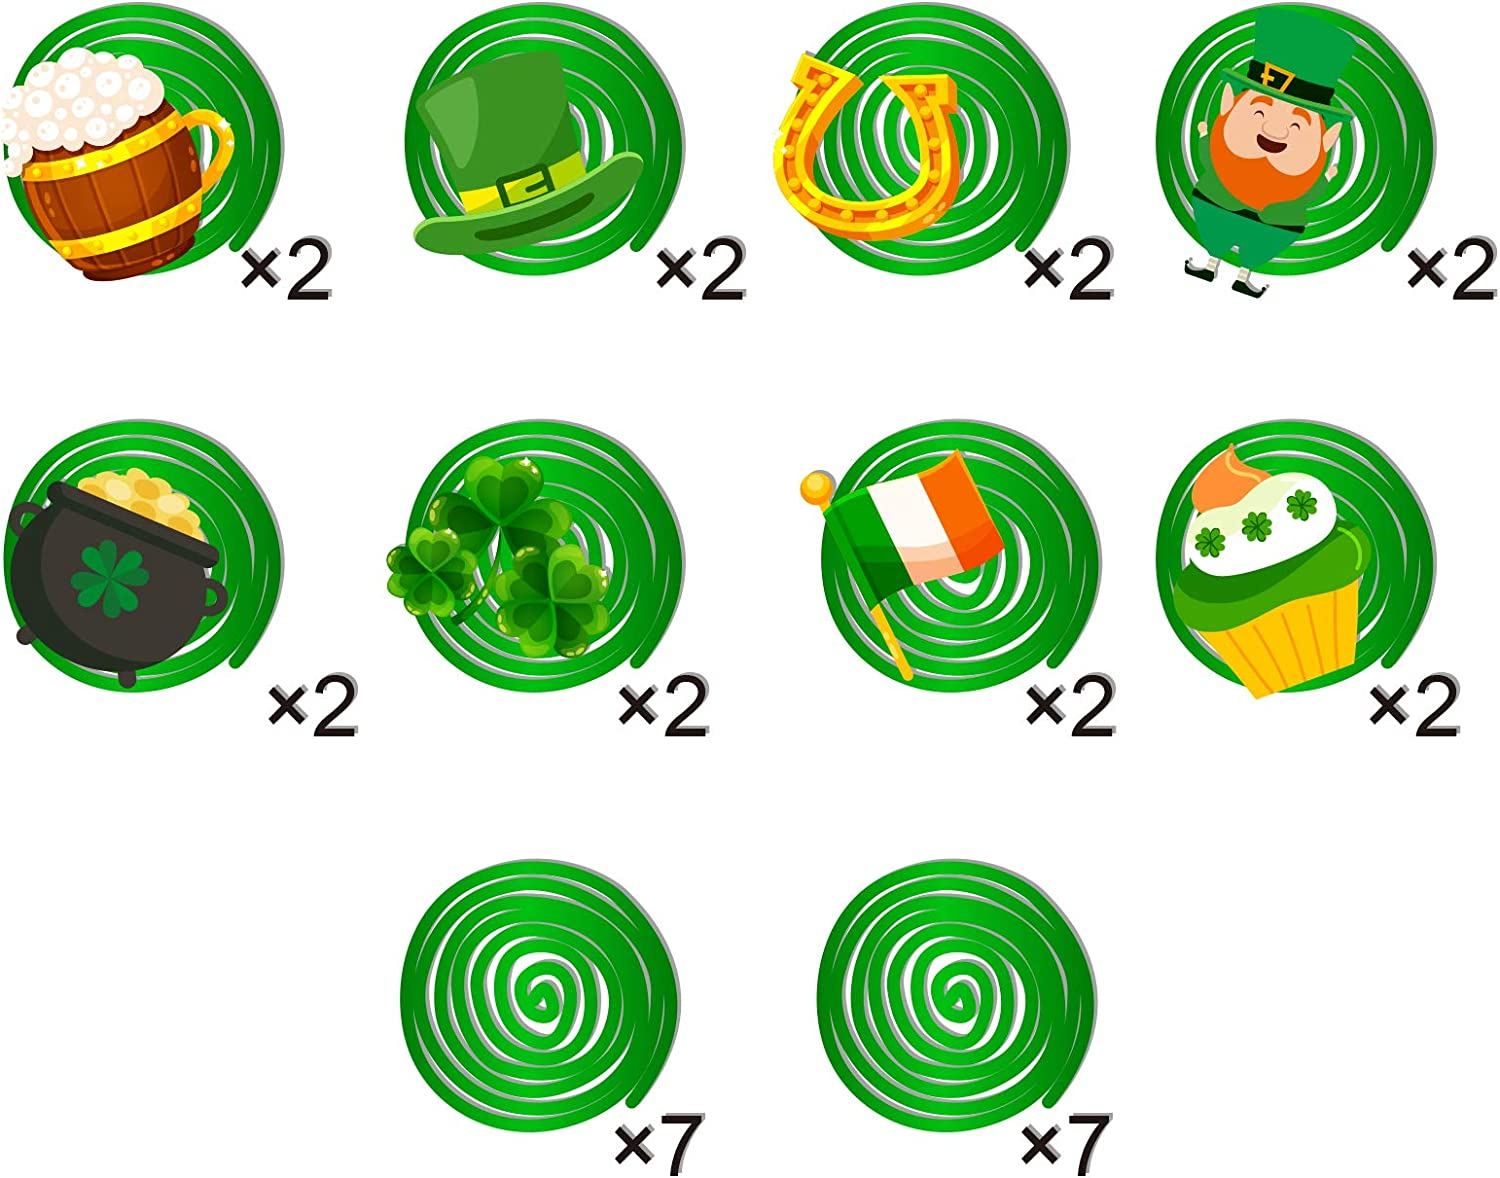 30pcs St Patrick Day Party Hanging Swirls Kits St.Patrick Day Lucky Irish Green Shamrock Party Supplies for Lucky Day Home Office Decor Saint Patricks Day Irish Hanging Decorations